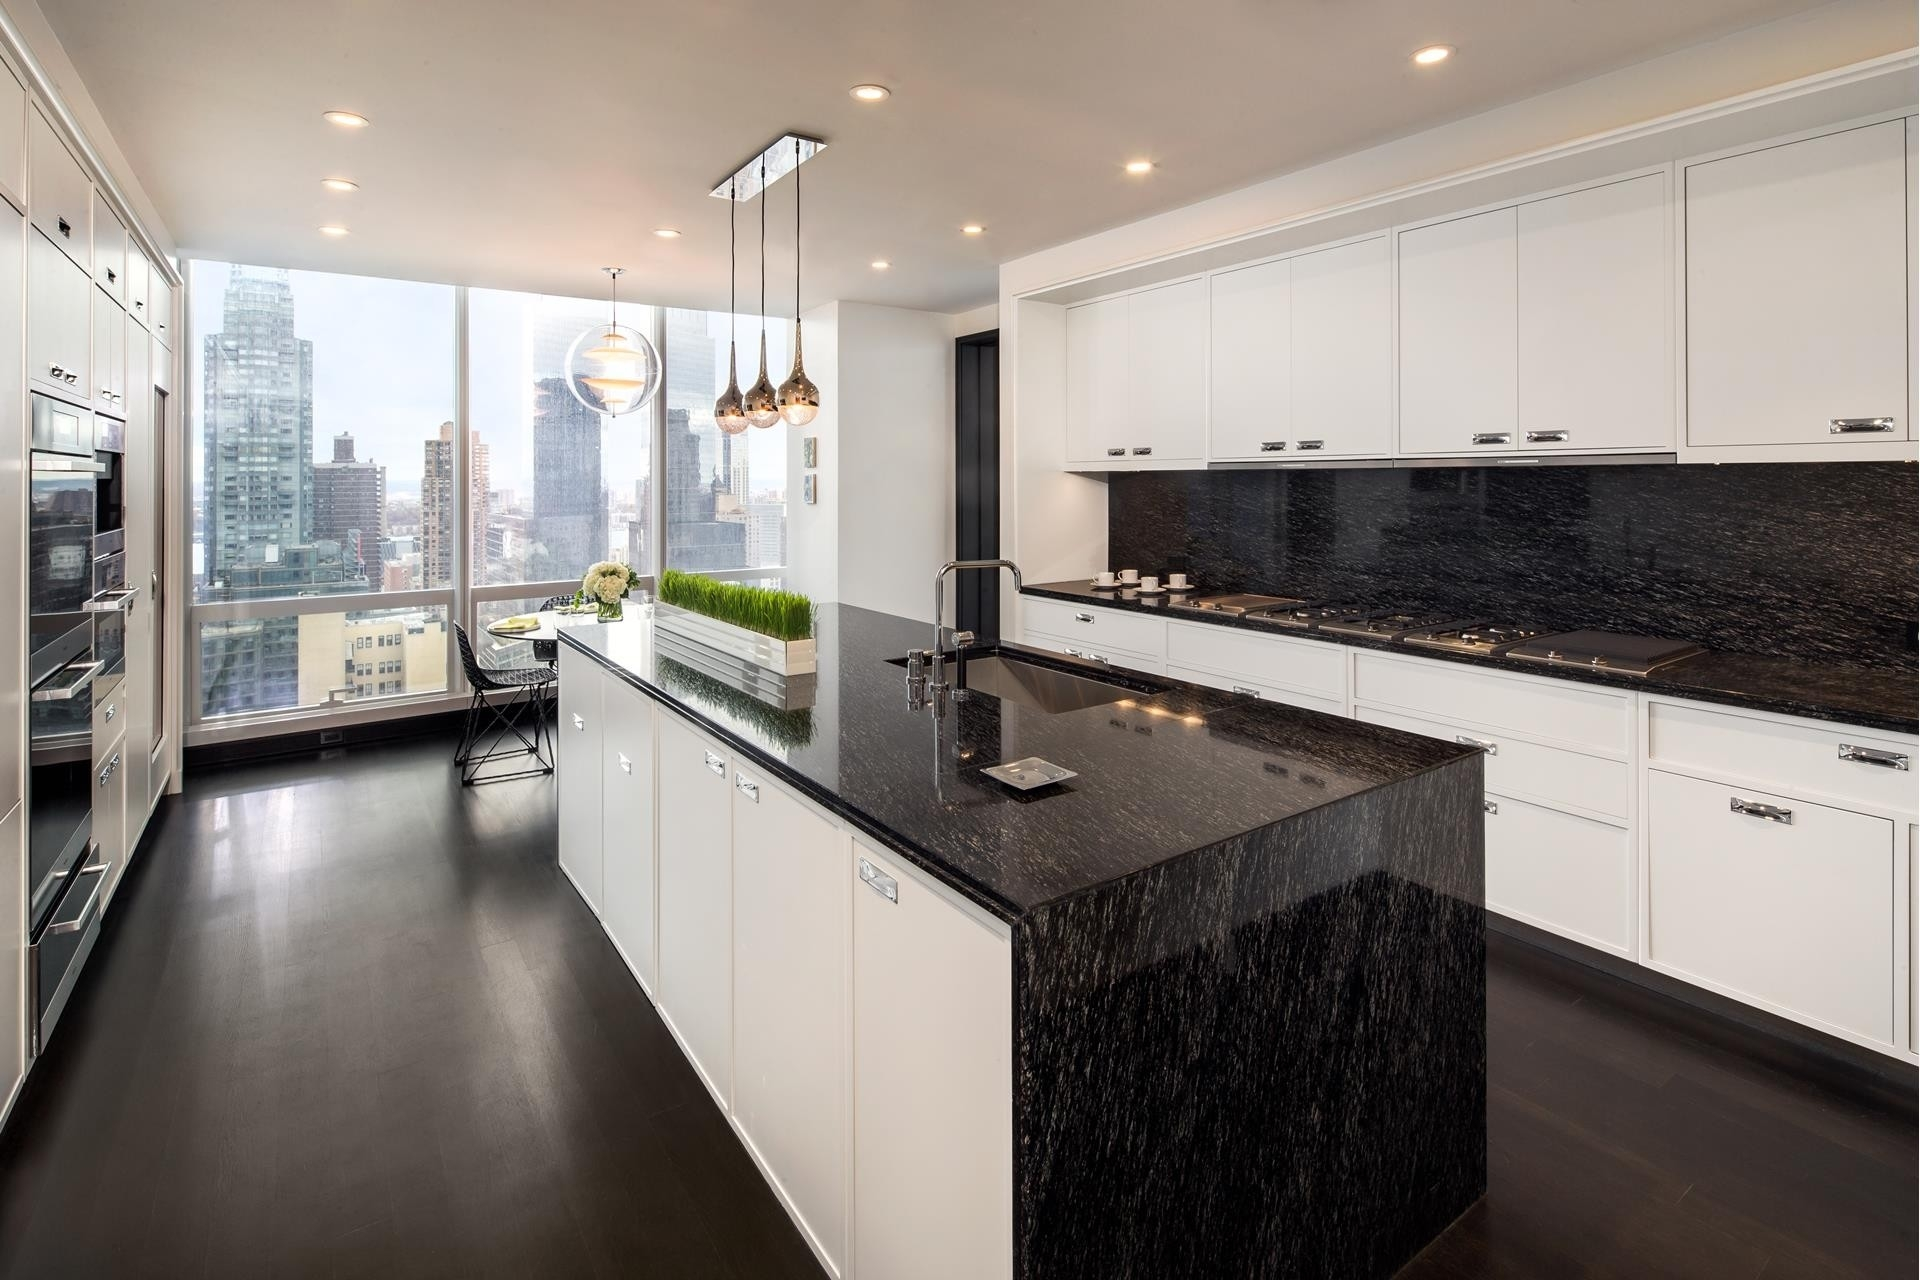 3. Condominiums for Sale at One57, 157 West 57th St, 41A Midtown West, New York, NY 10019